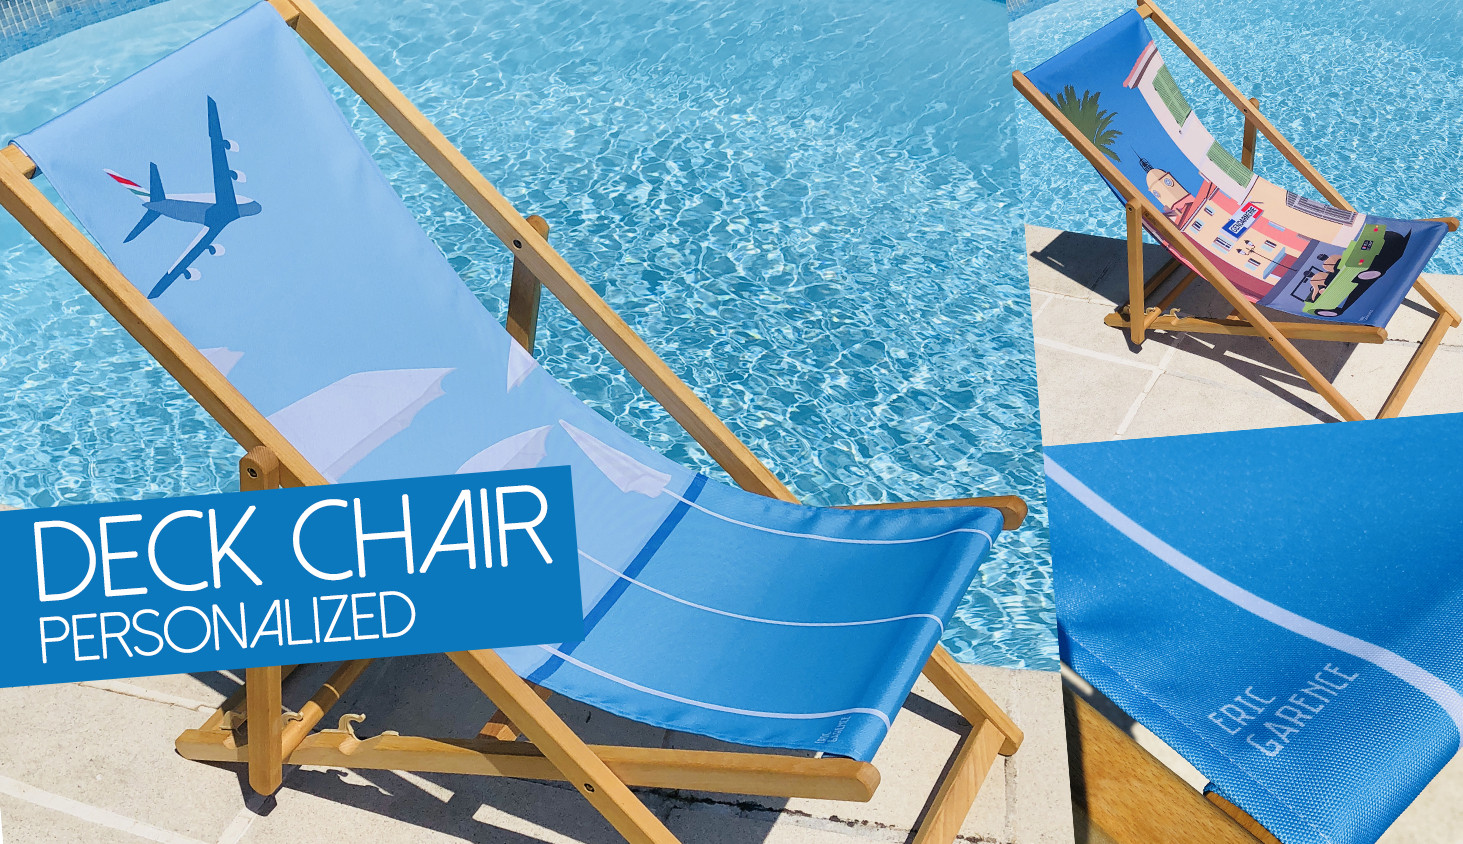 Deck Chair personalized